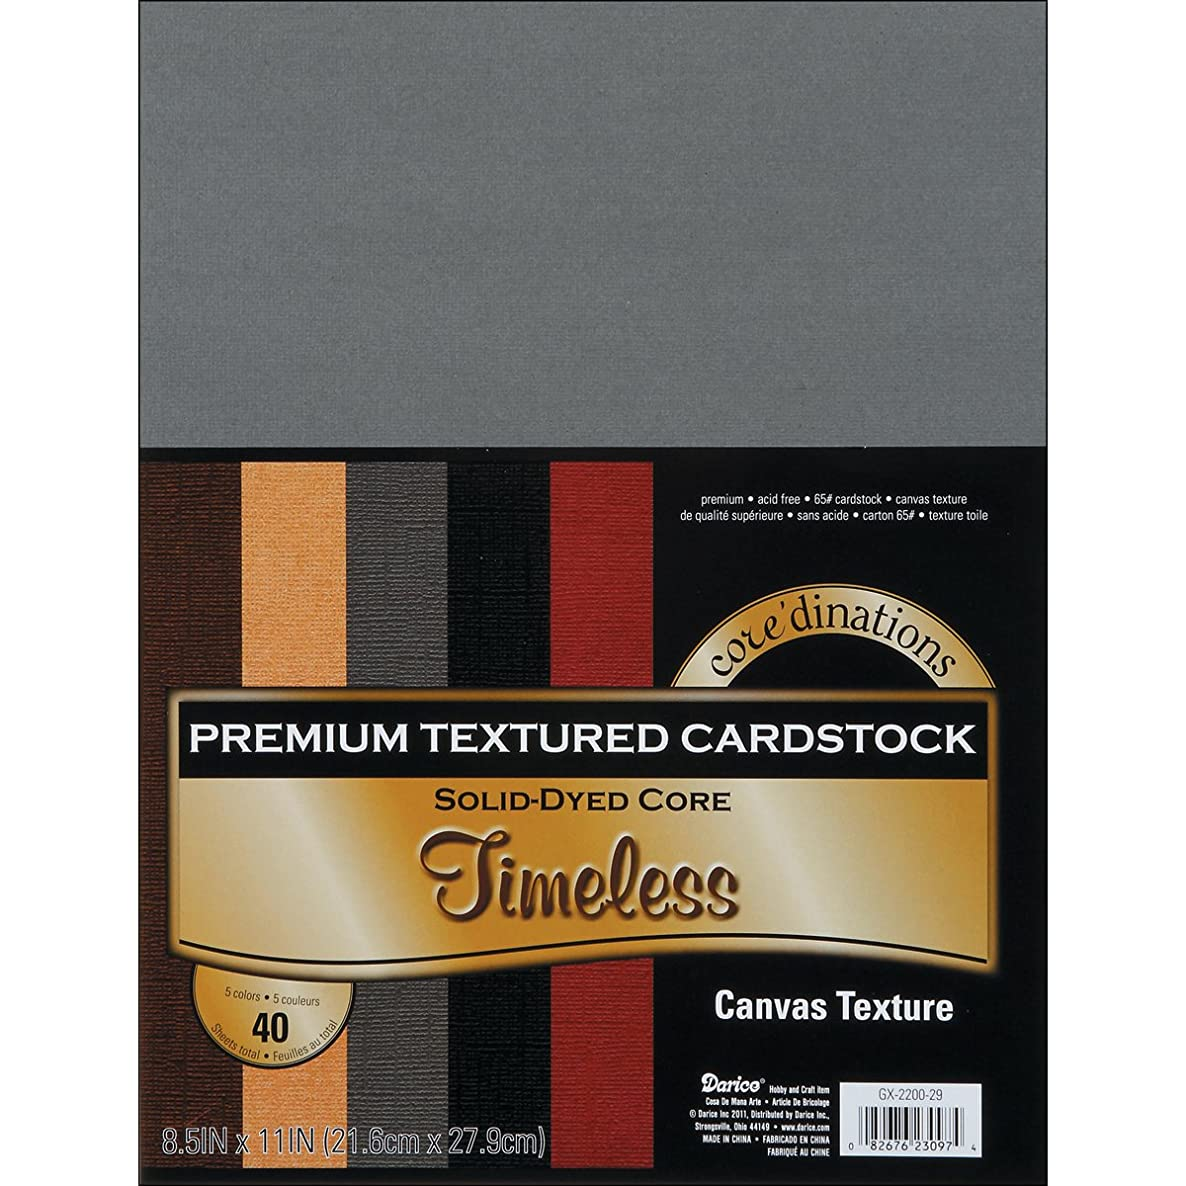 Darice GX220029 Coordination Value Cardstock, 8.5 by 11-Inch, Timeless, 40-Pack